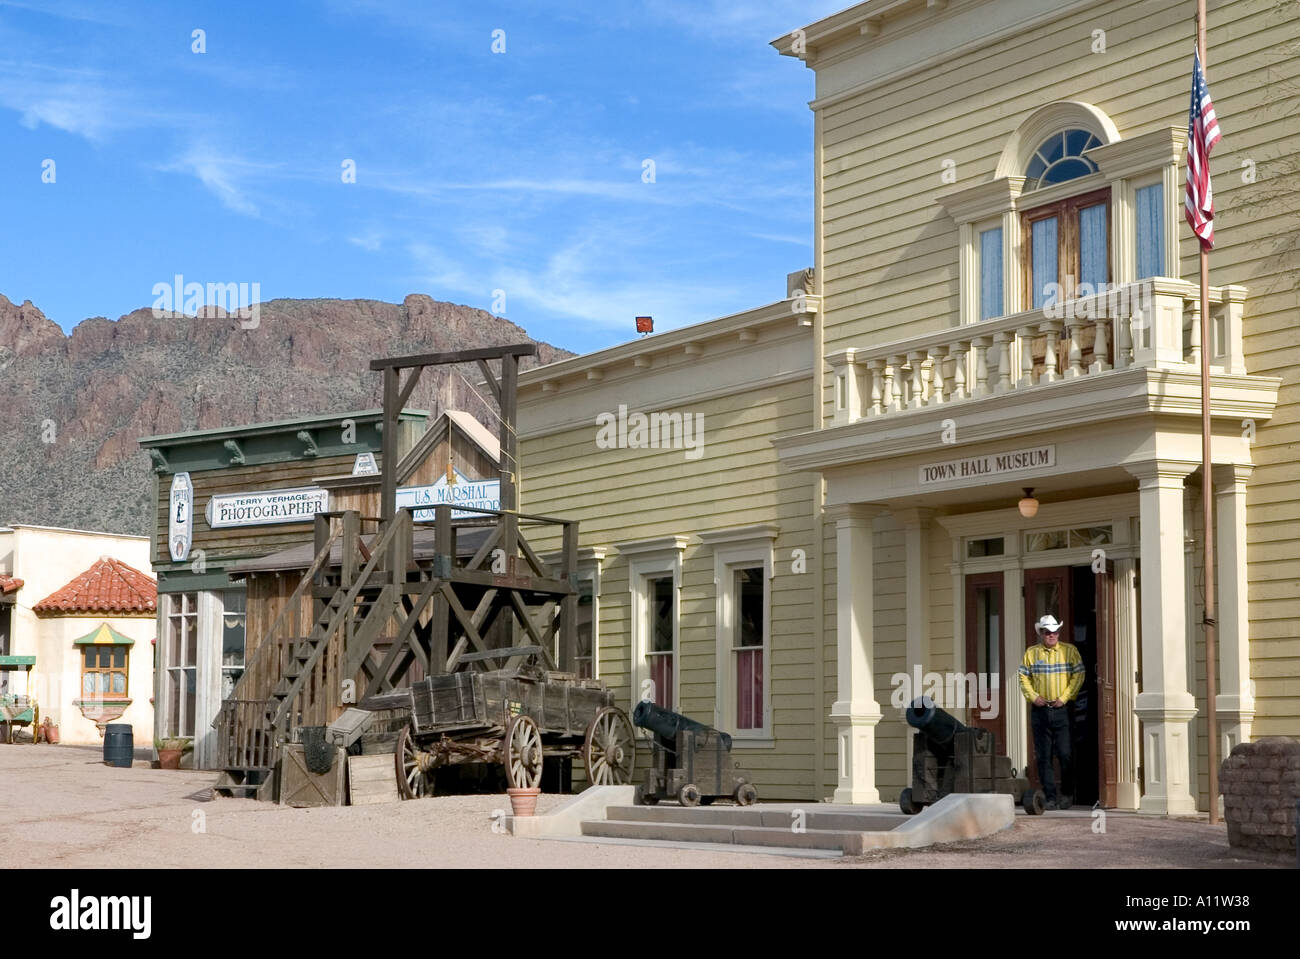 Town Hall museum and gallows at at Old Tucson Studios - Stock Image